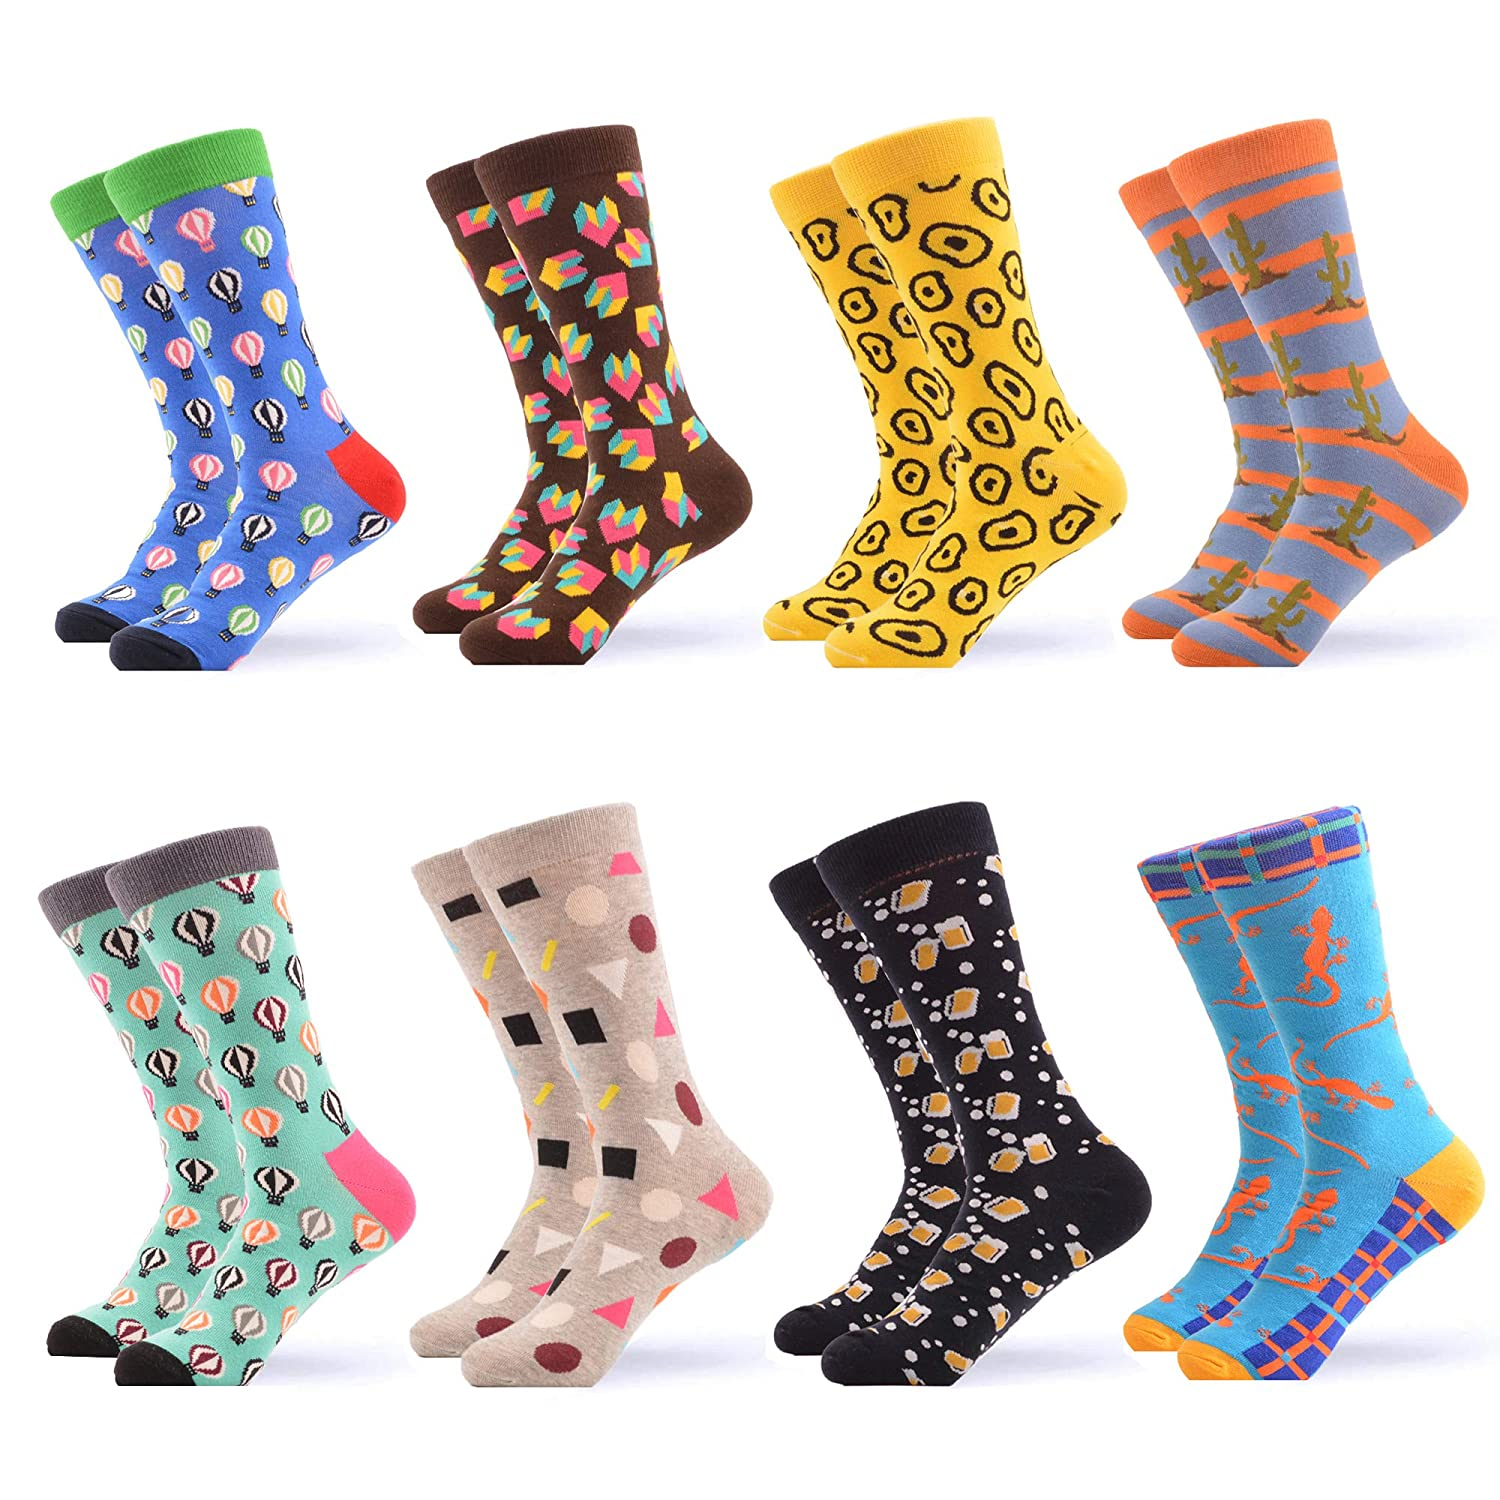 05861 WeciBor Women's Funny Casual Combed Cotton Socks Packs